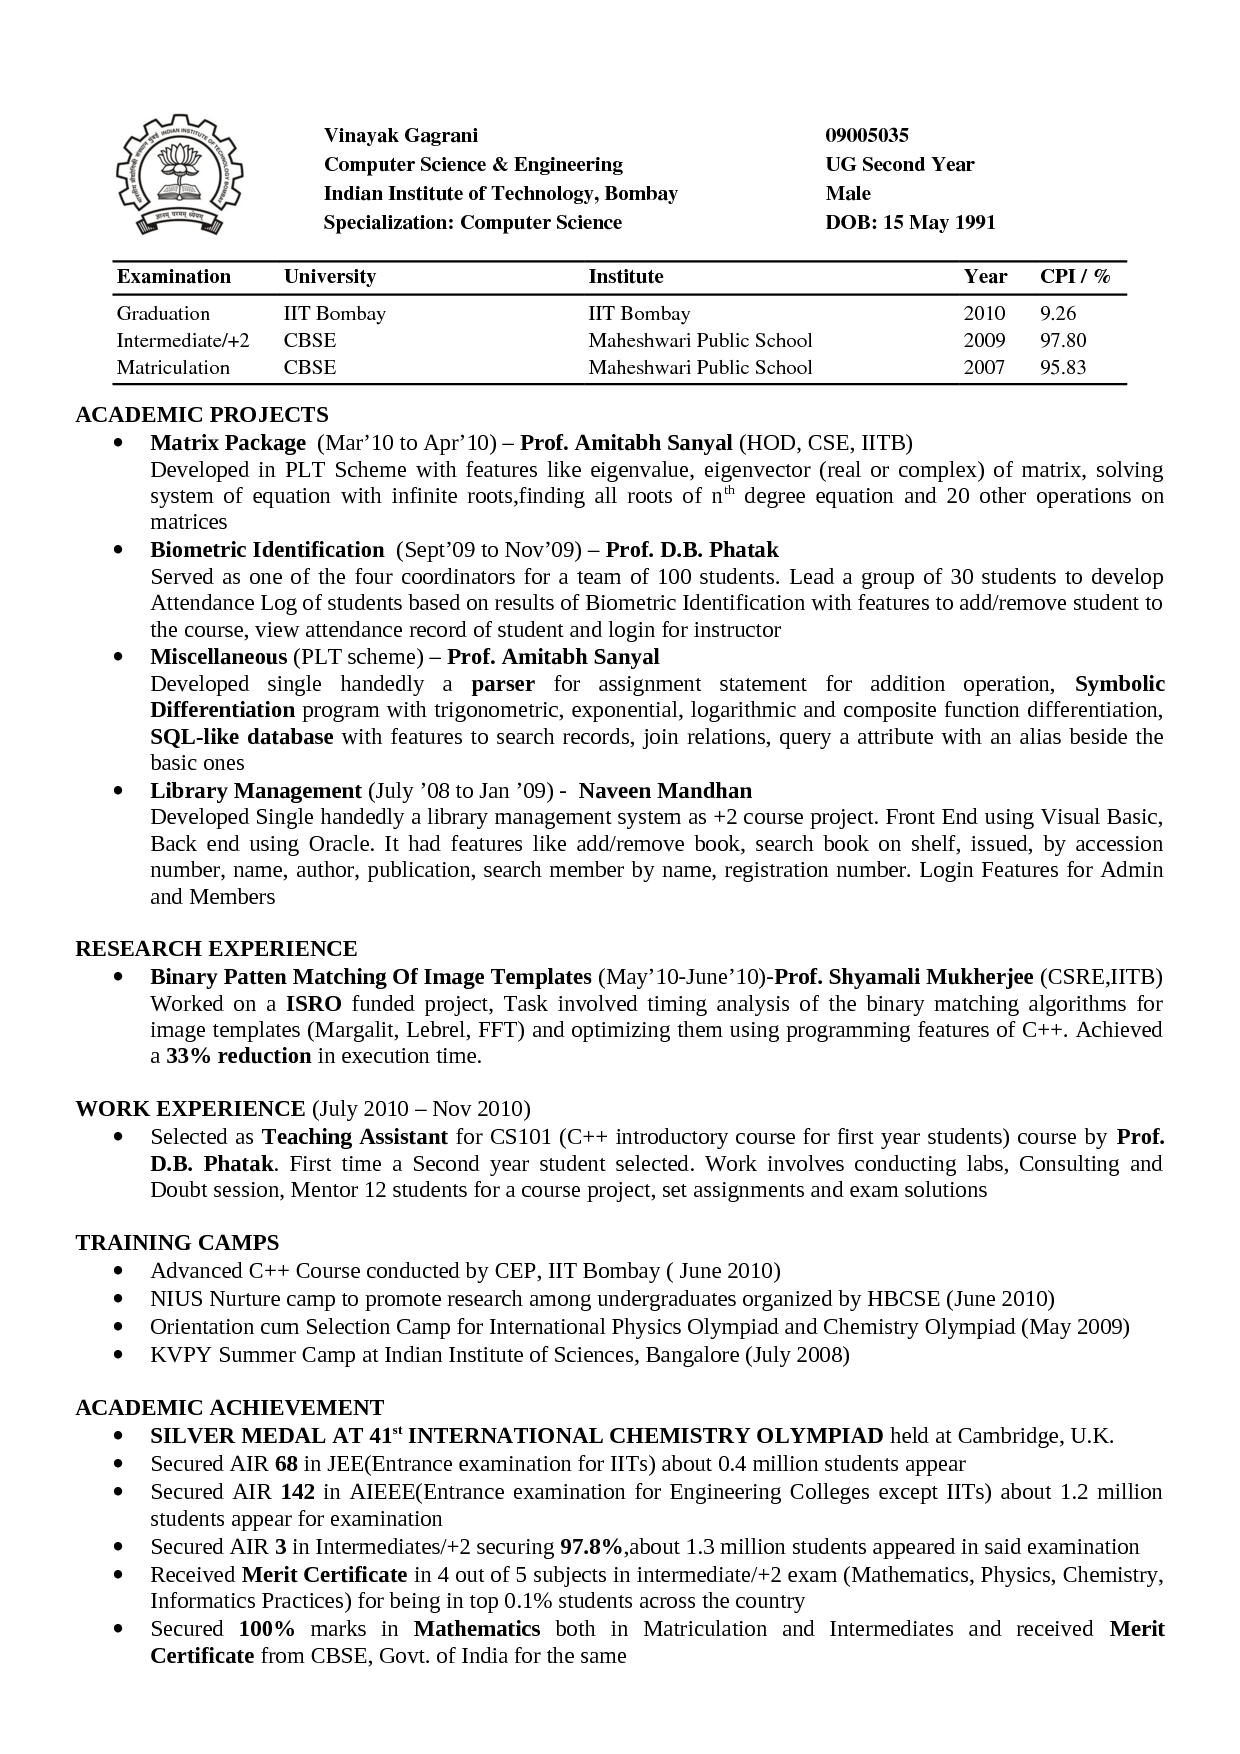 Computer Science Resumes Reddit Resume Sample For Ojt Student